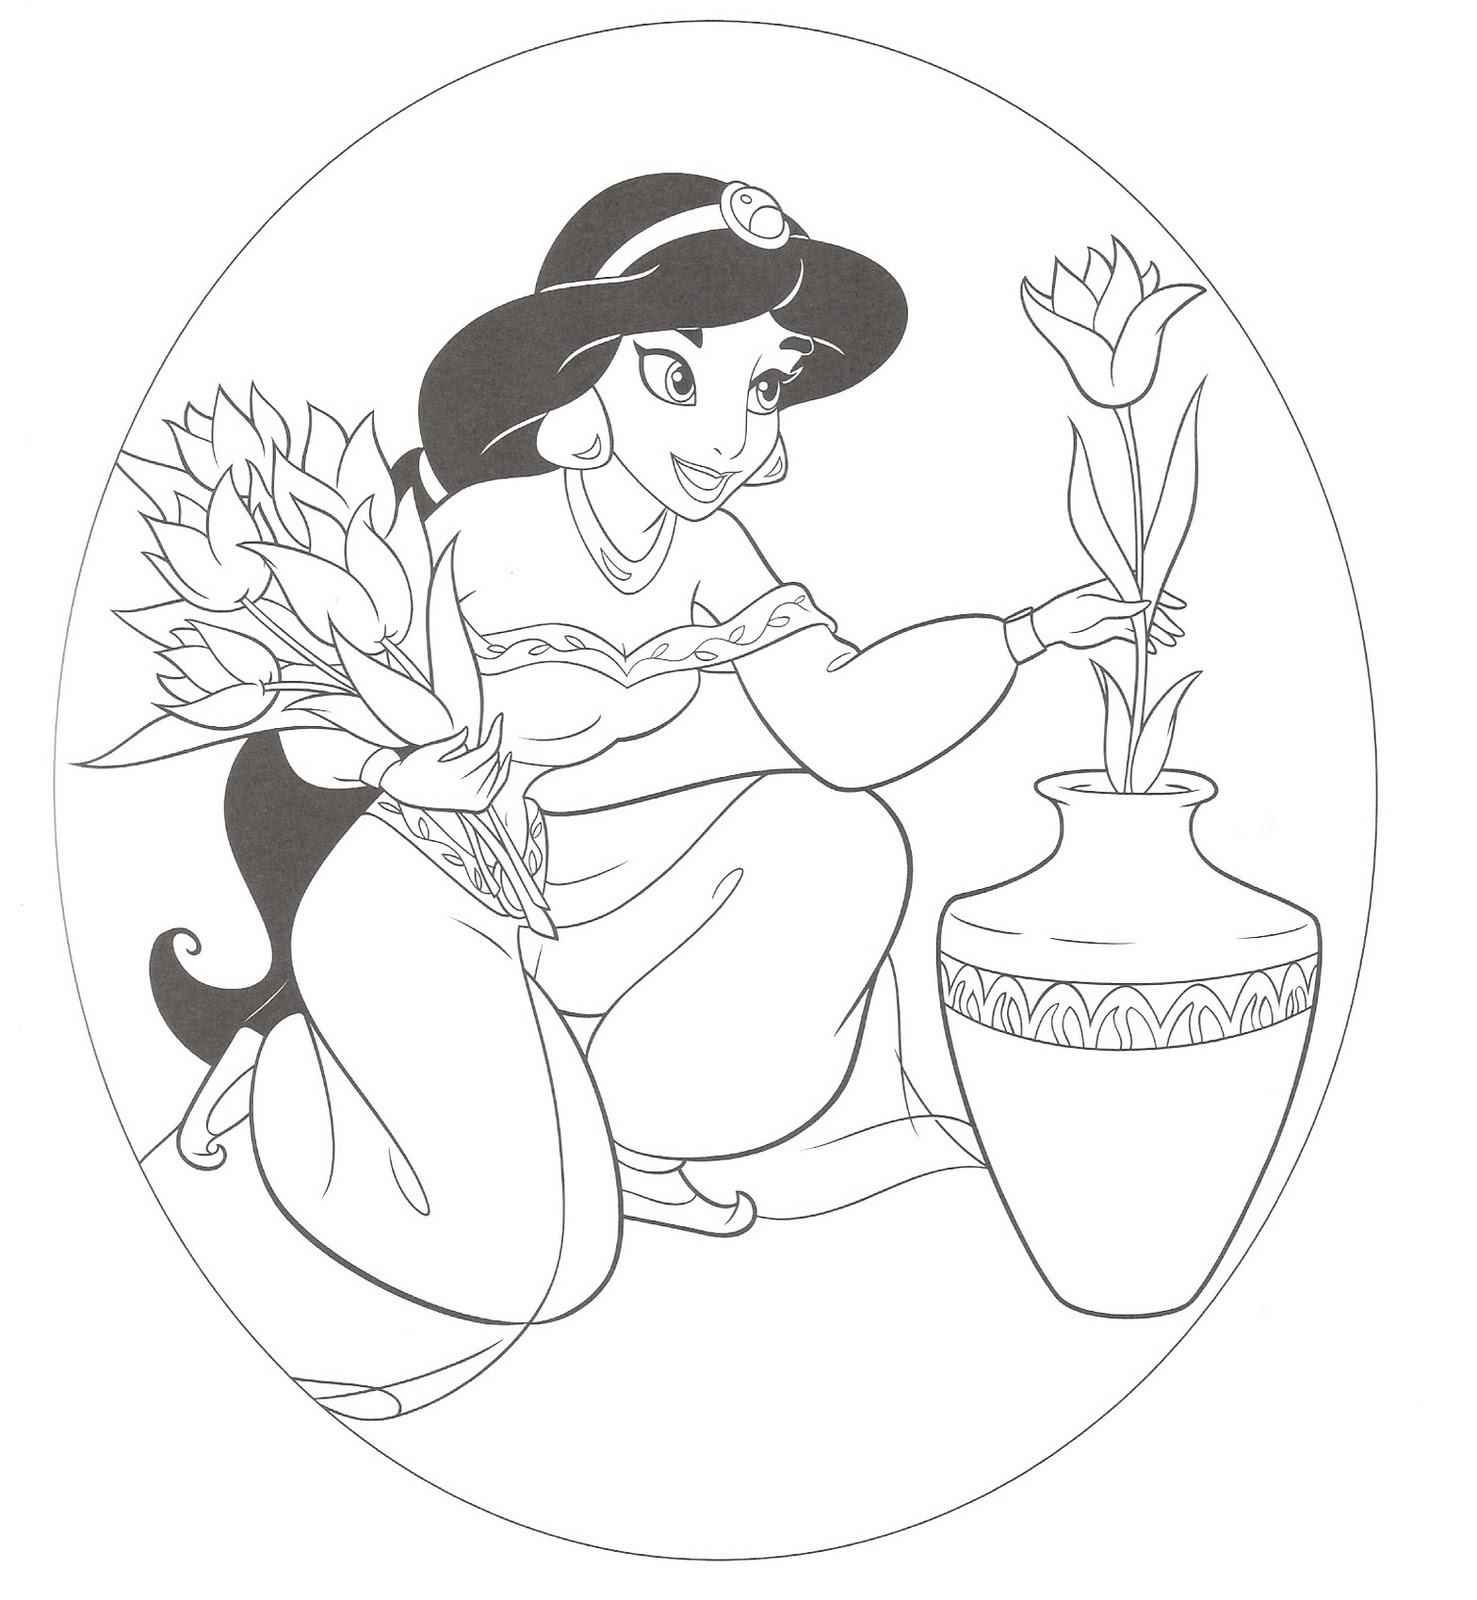 disnet princesses babies coloring pages - photo#33